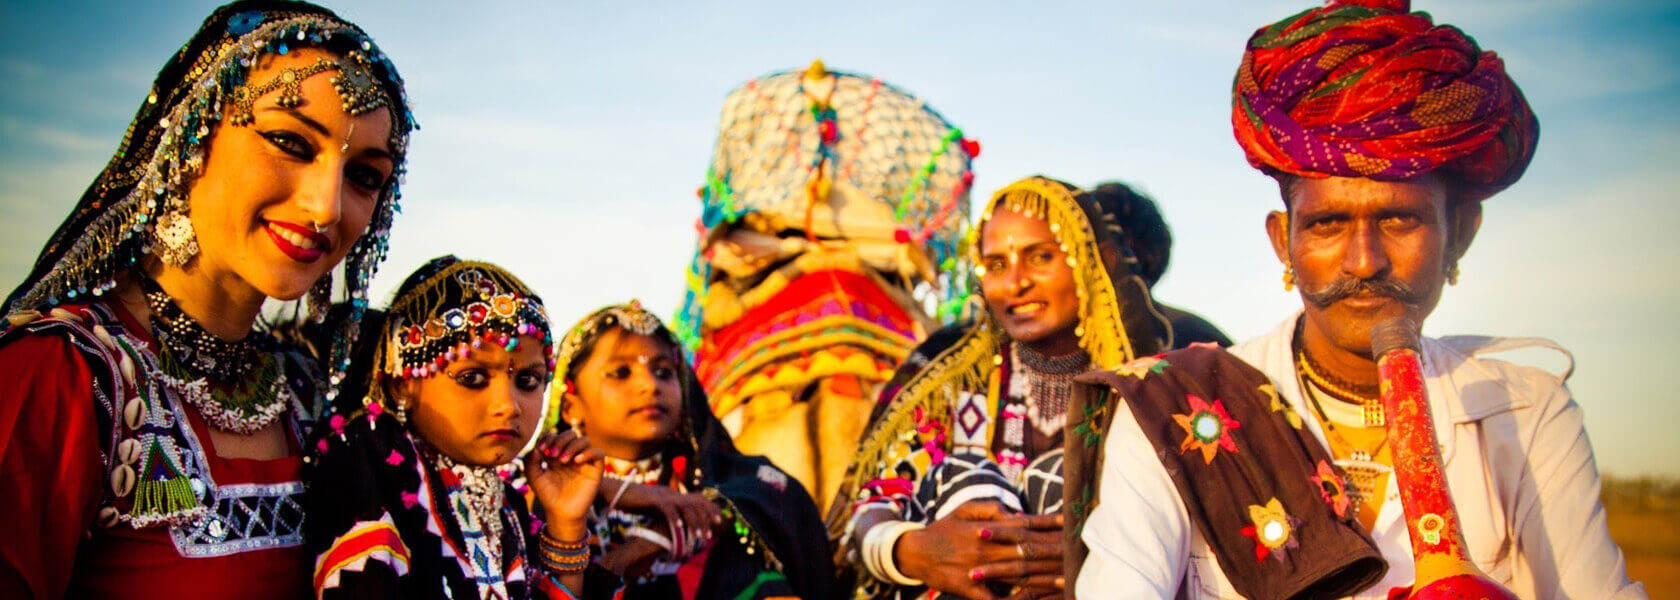 Religion and people of Rajasthan